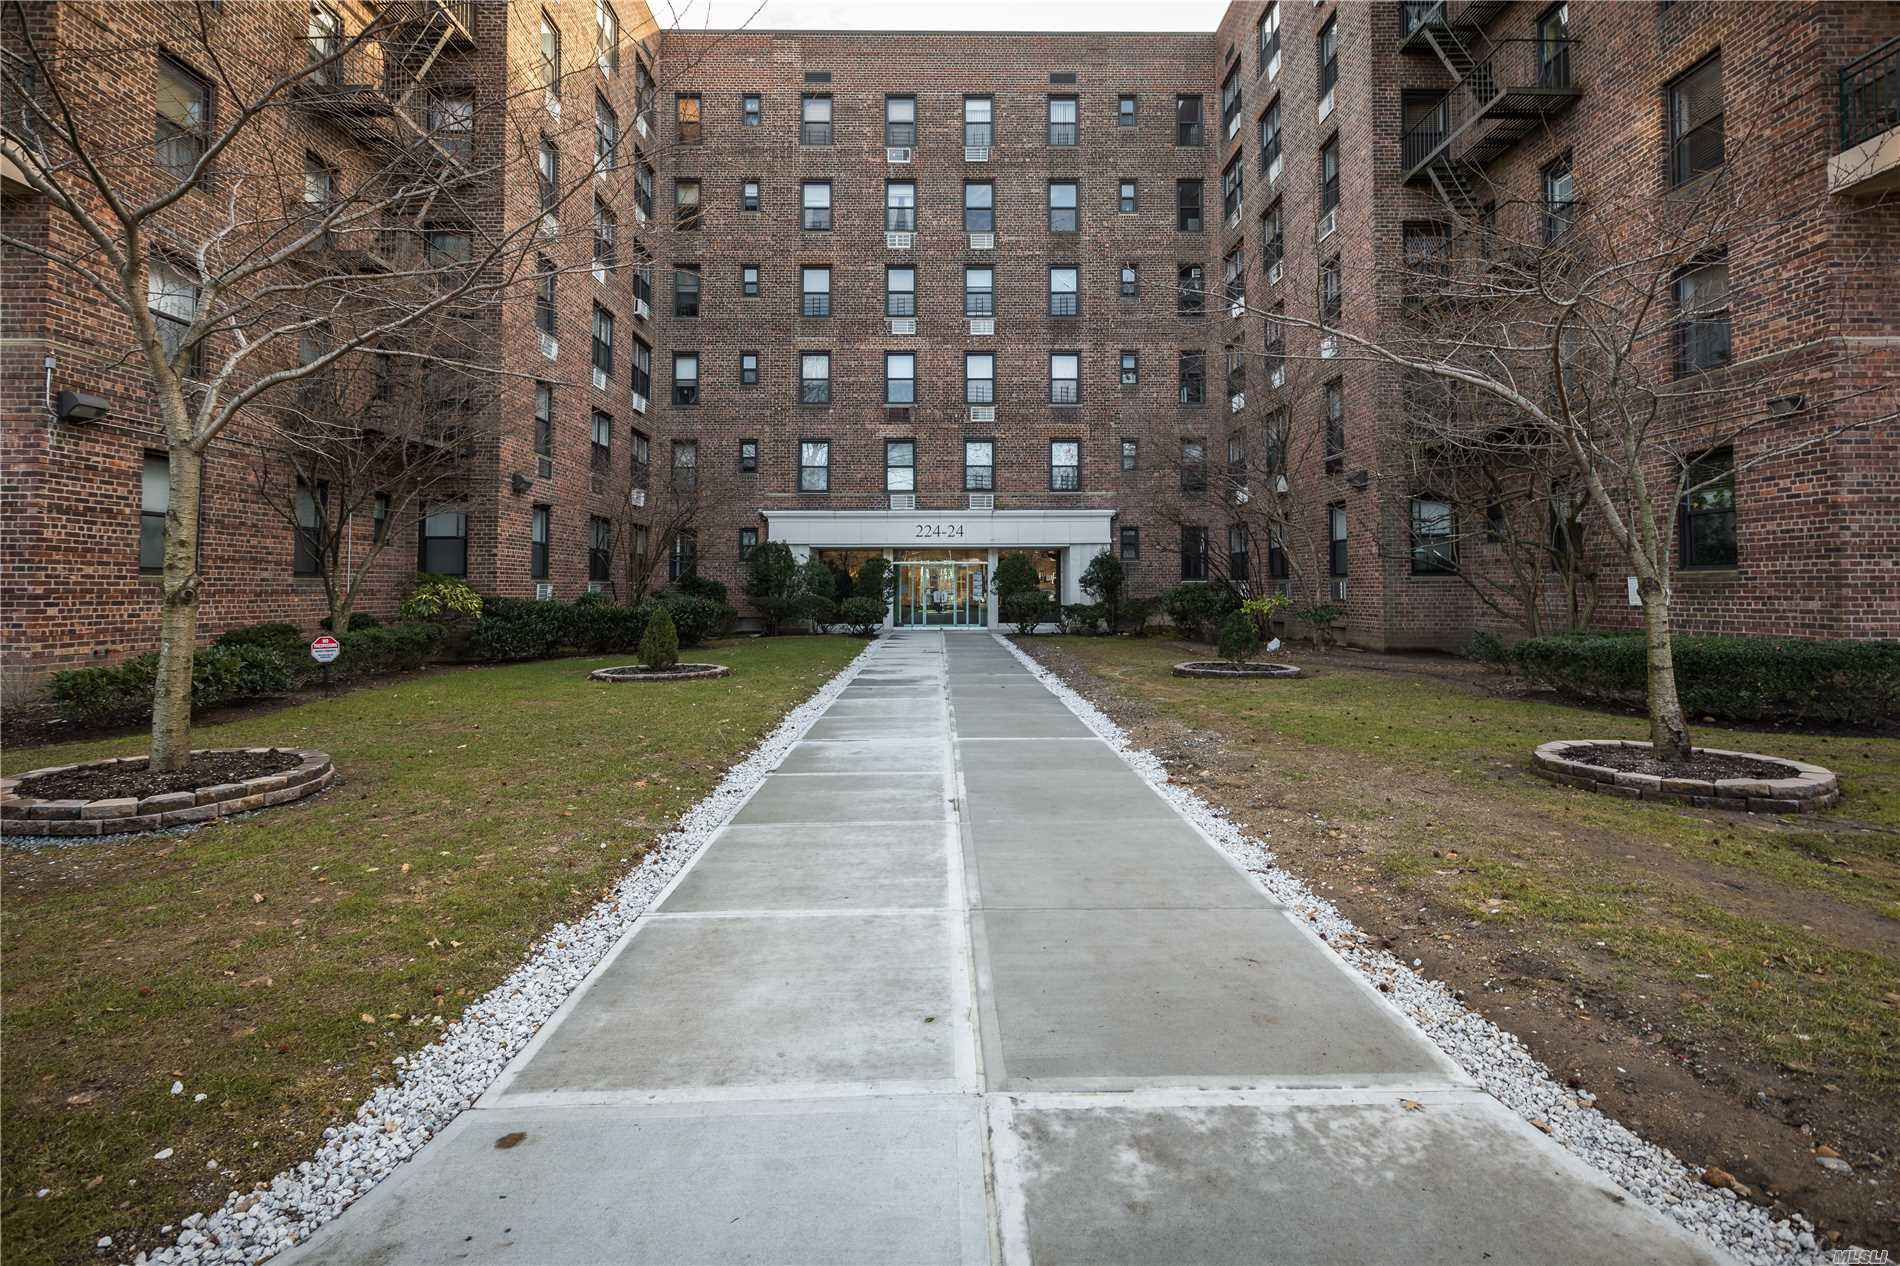 Beautiful Two Bedroom Unit Available On The Top Floor Of Cambridge Hall. An Open Floor Plan, Updated Bathroom And Kitchen, Plus Lots Of Closet Space Make This Unit Very Desirable. Beyond The Unit There Is Laundry And A Bike Room Available. During The Warmer Months You Will Be Able To Enjoy The Pool And Barbecue Area. If You Are Commuting To Manhattan An Express Bus Is Available On Union Turnpike. Come See Your Next Home And Begin Enjoying The Convenience Of Life At Cambridge Hall.